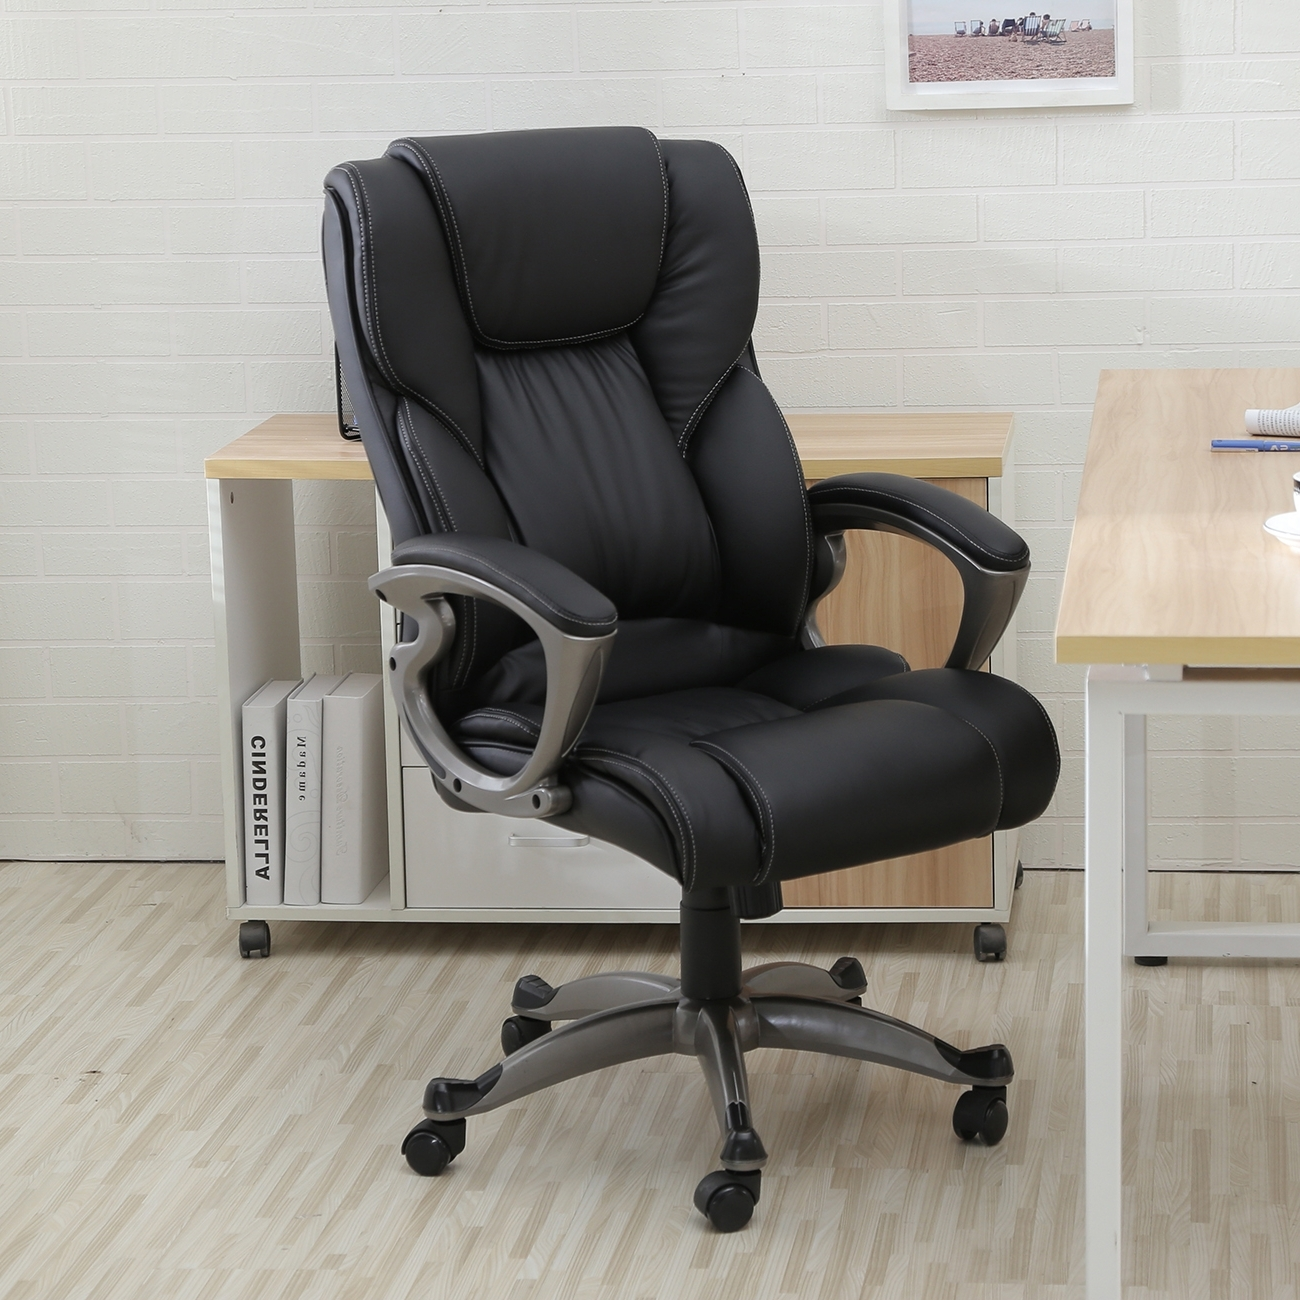 Recent How To Choose An Ergonomic Office Chair – Theydesign Regarding Ergonomic Executive Office Chairs (View 10 of 20)